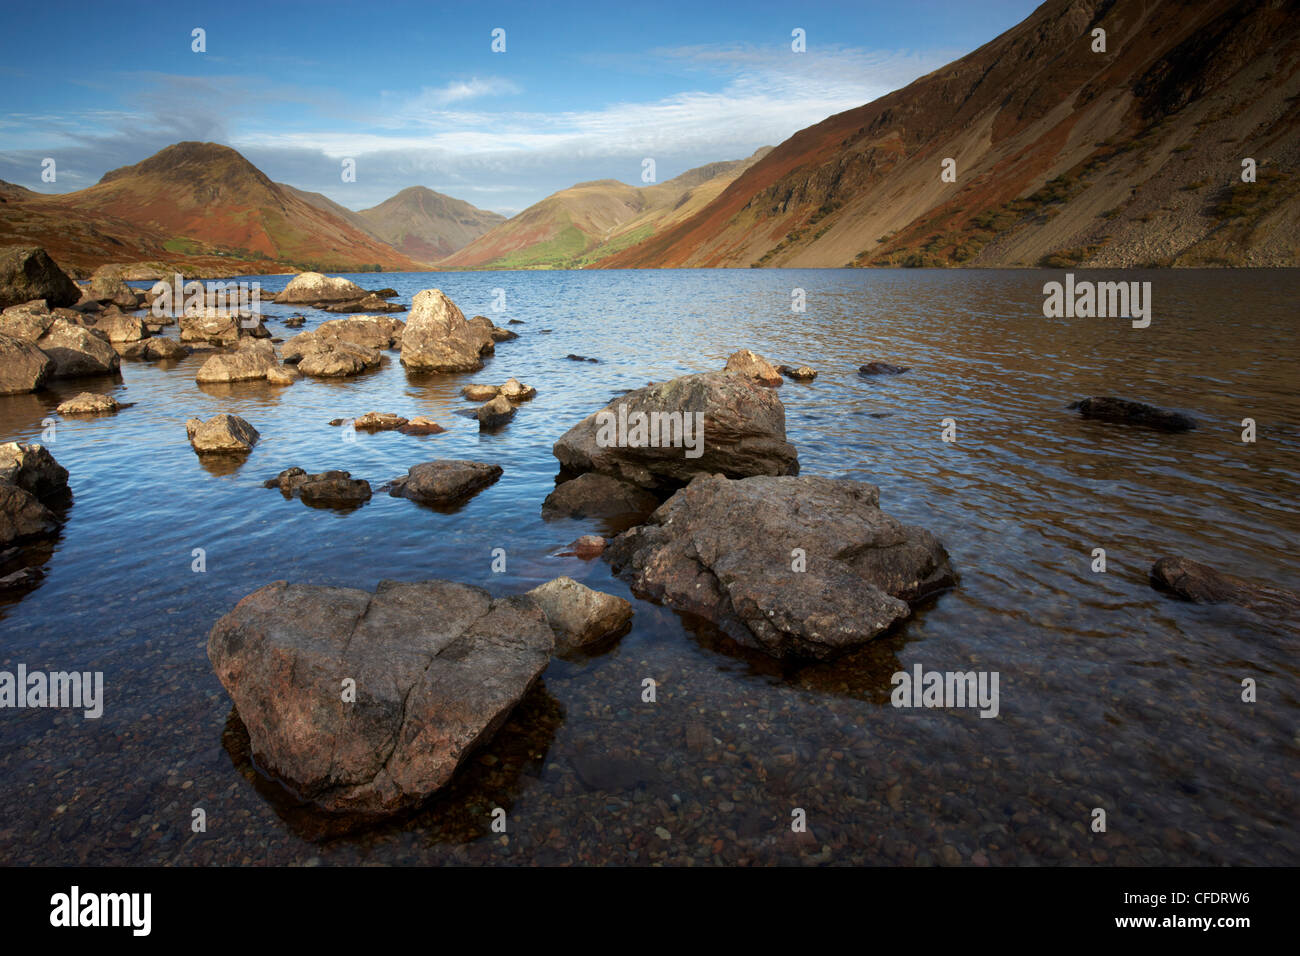 An autumn evening at Wastwater in the Lake District National Park, Cumbria, England, United Kingdom, Europe - Stock Image